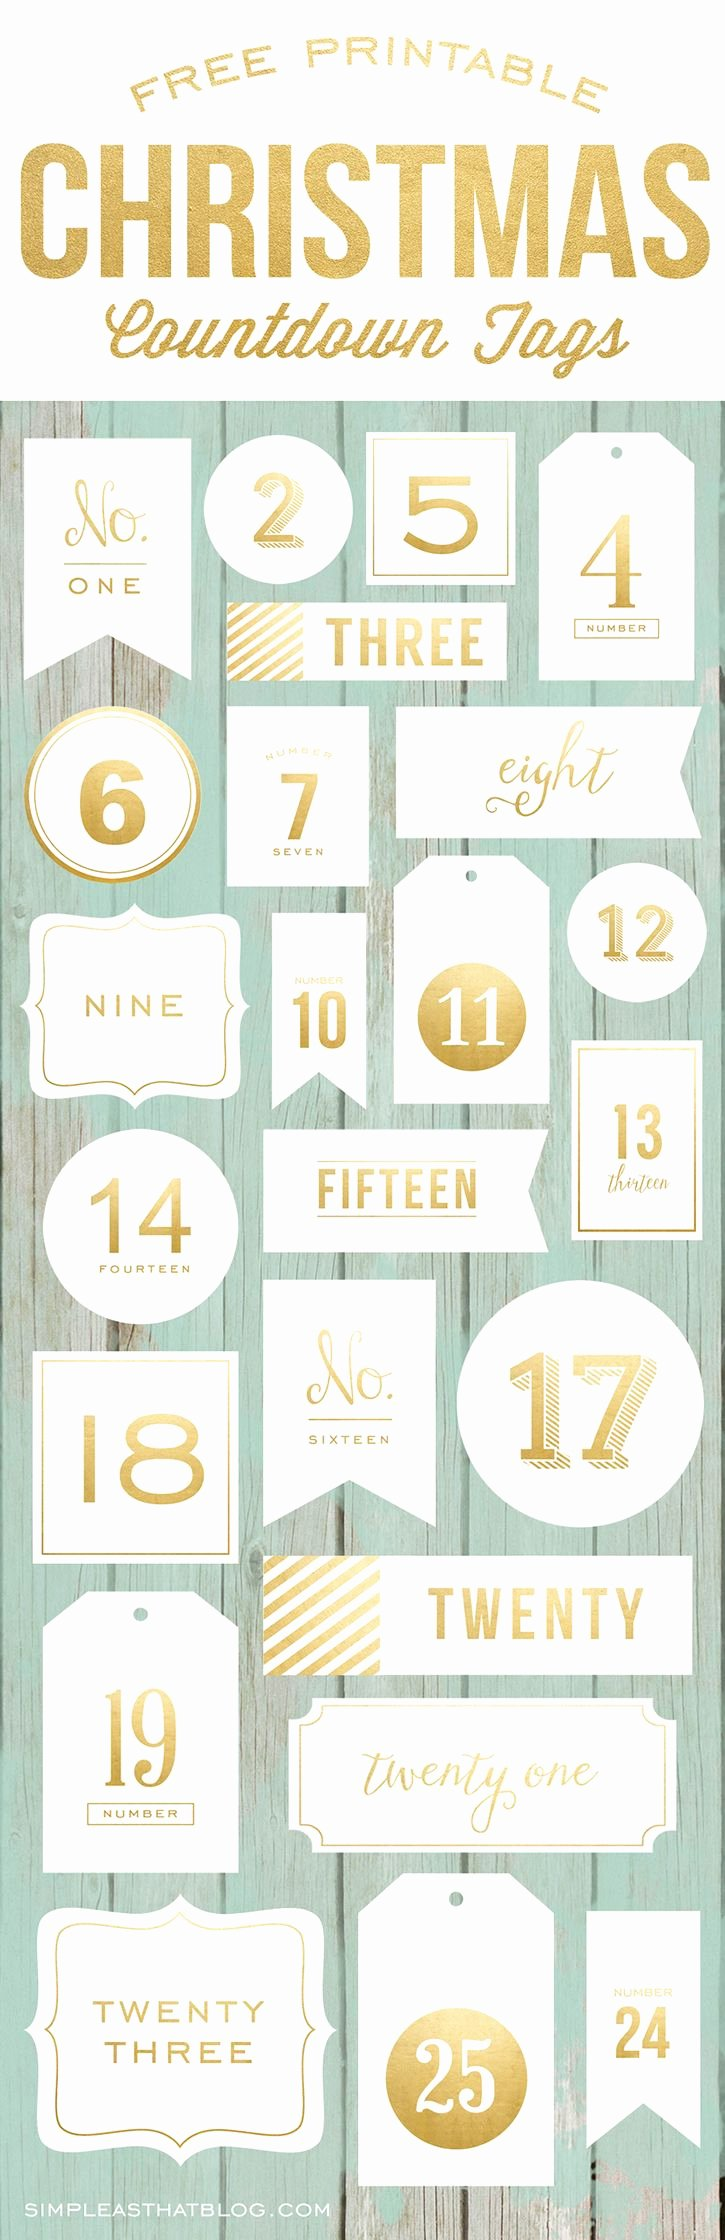 Free Printable Countdown Calendar Elegant 2506 Best Images About Free Printables On Pinterest